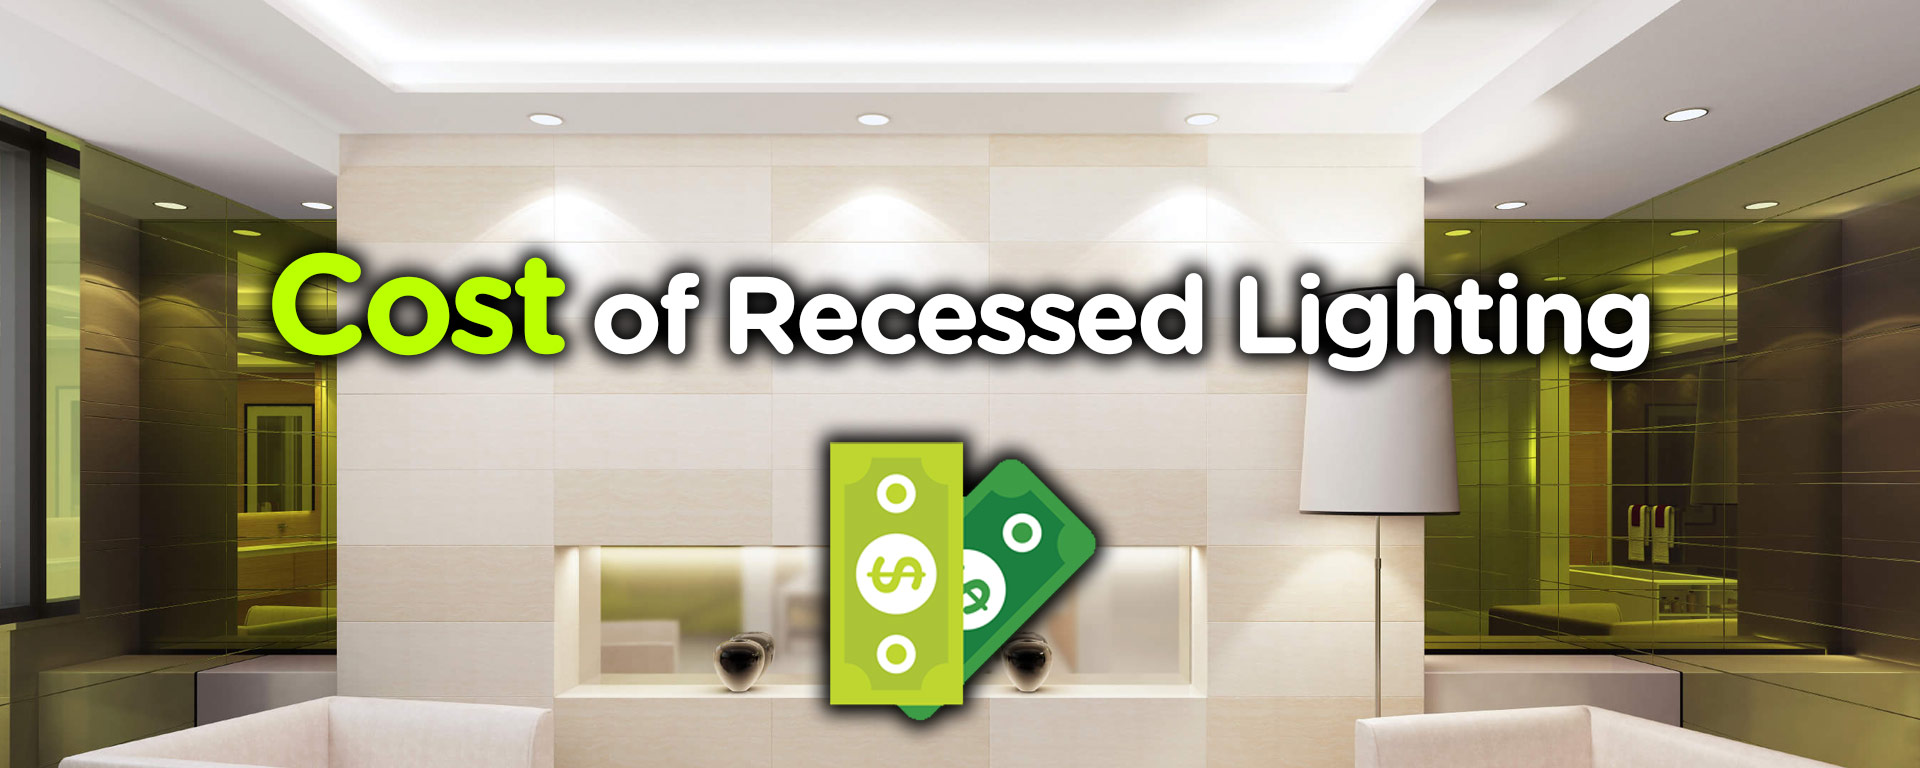 The Cost Of Recessed Lighting Add Dramatic Effect To Your